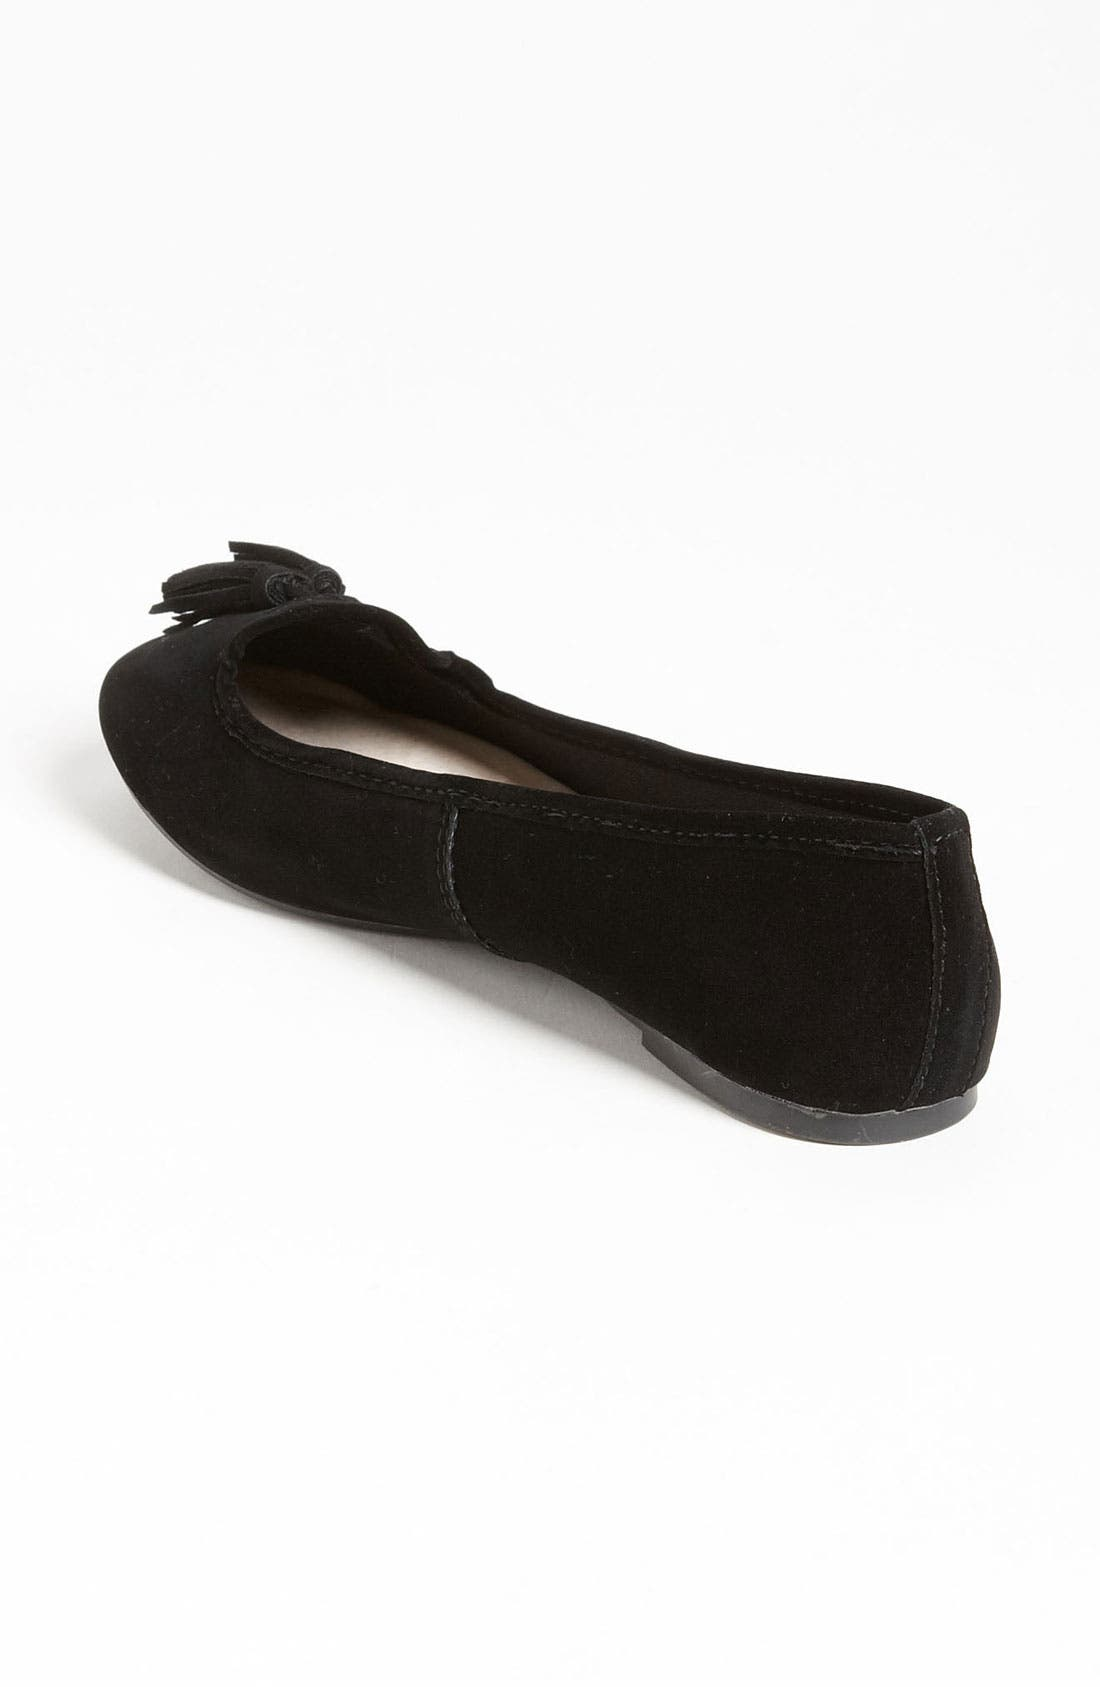 Alternate Image 2  - Topshop 'Mex' Velvet Slipper